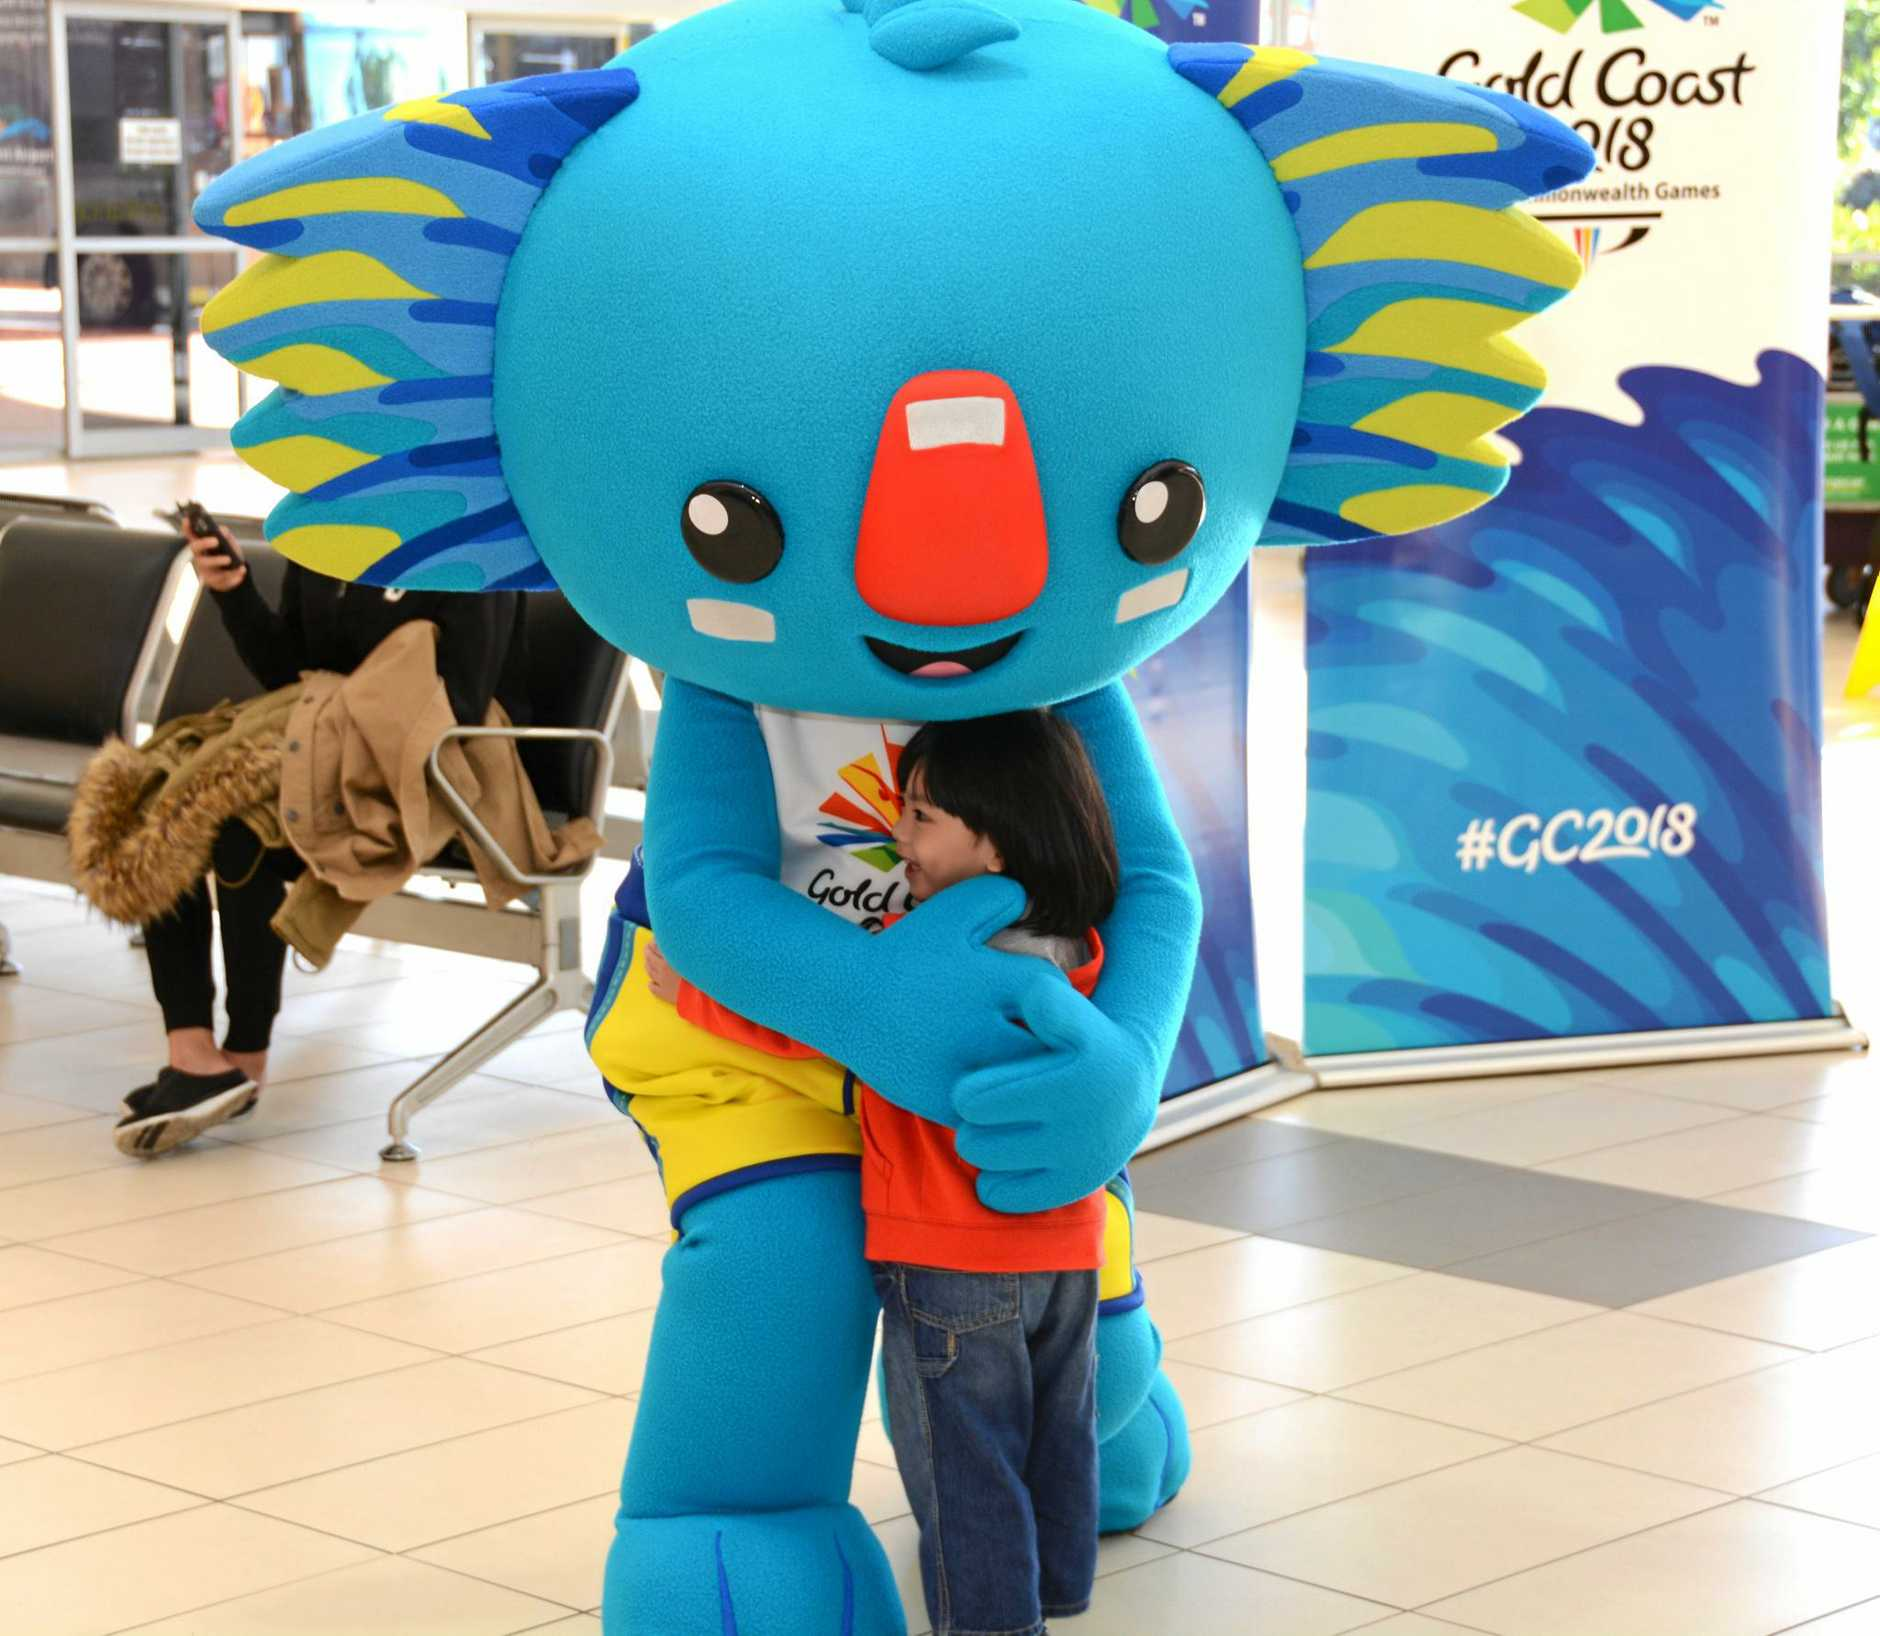 Gold Coast 2018 Commonwealth Games mascot Borobi greeting international passengers at Gold Coast airport on Wednesday, May 25